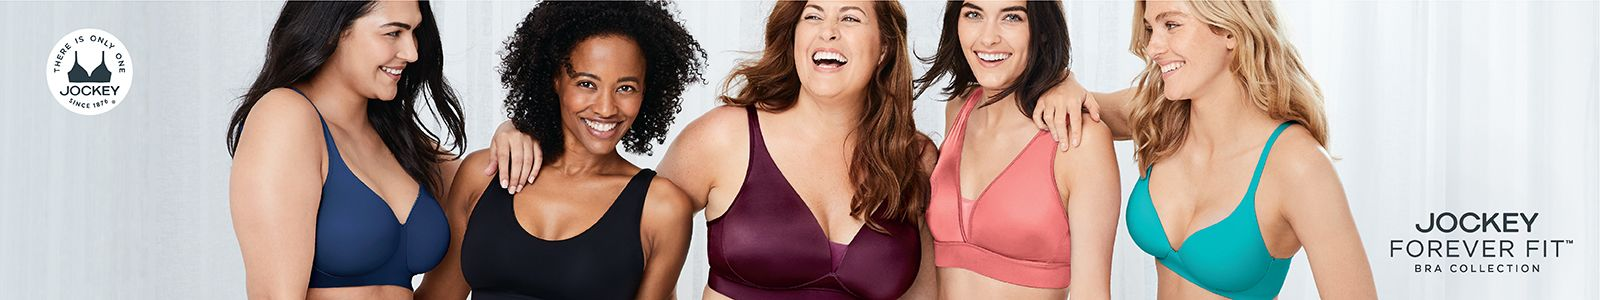 Jockey, Forever Fit, Bra Collection